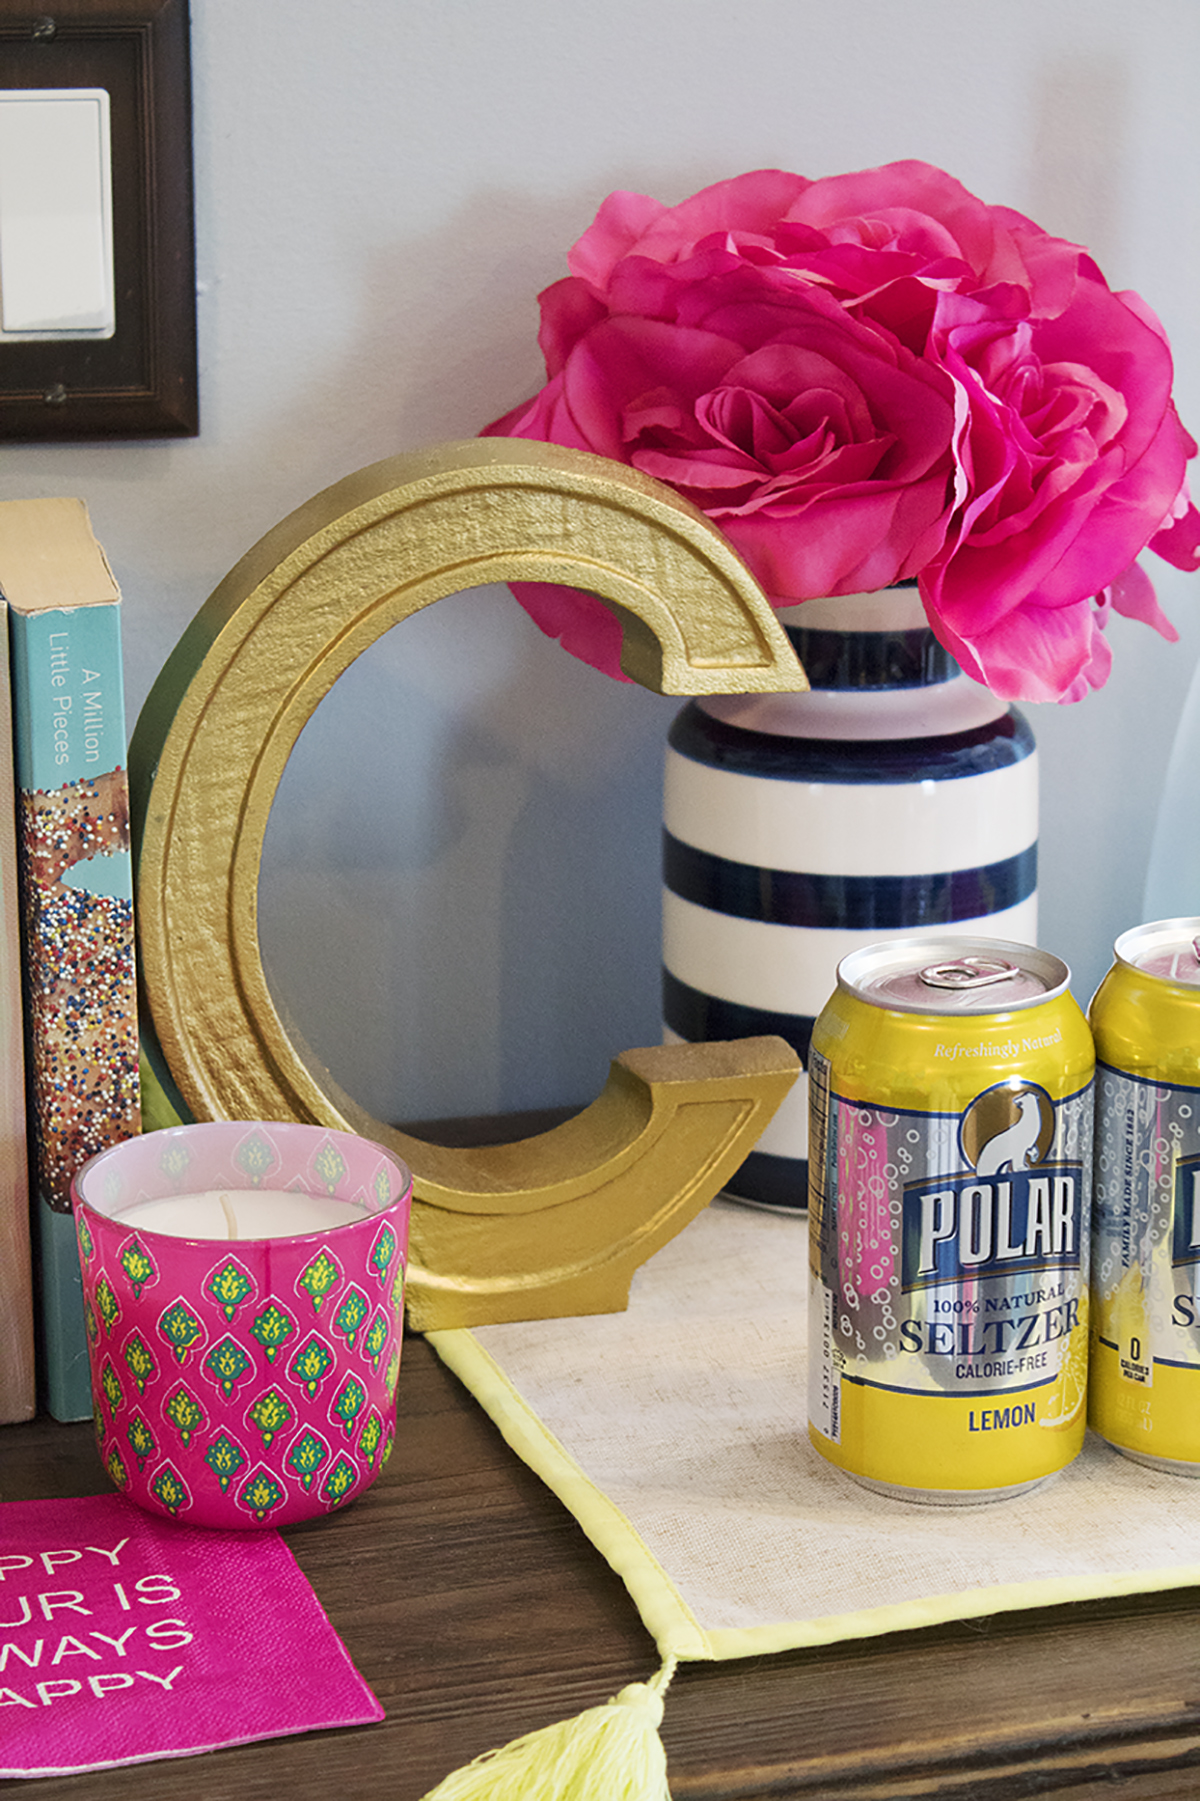 Add a pop of color to your bar decor! Click to see how I styled mine for everyday use.